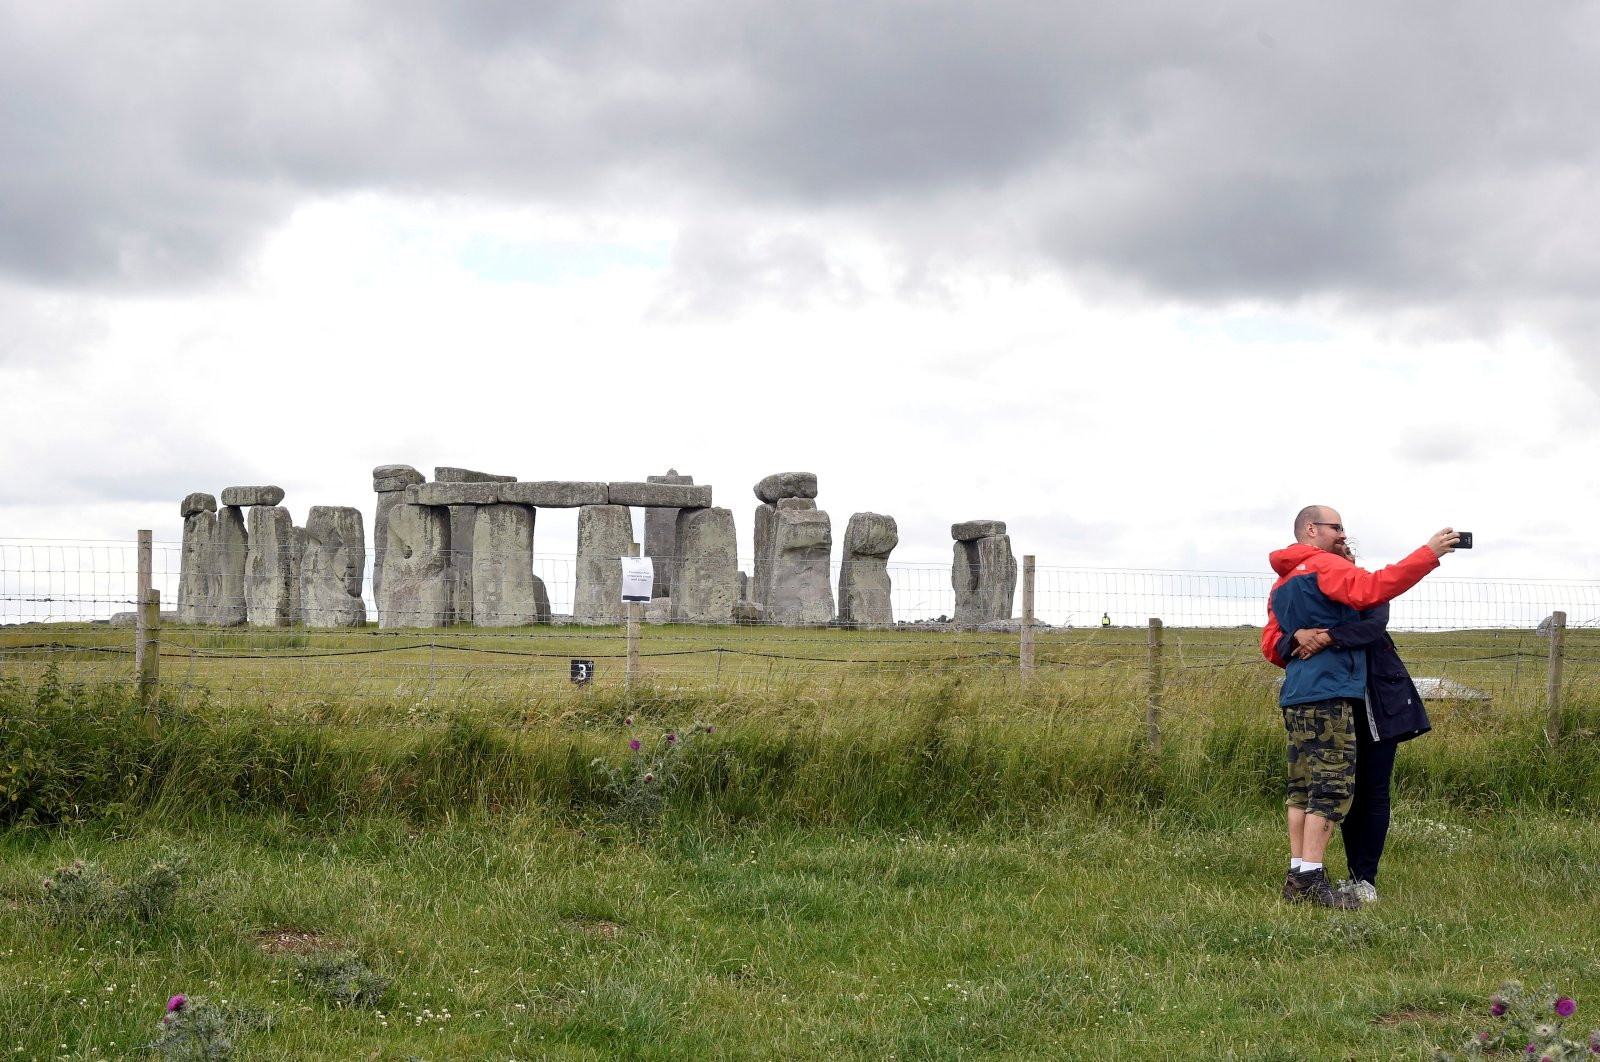 A couple takes a selfie while visiting Stonehenge near Amesbury, Britain, June 20, 2020. (Reuters Photo)